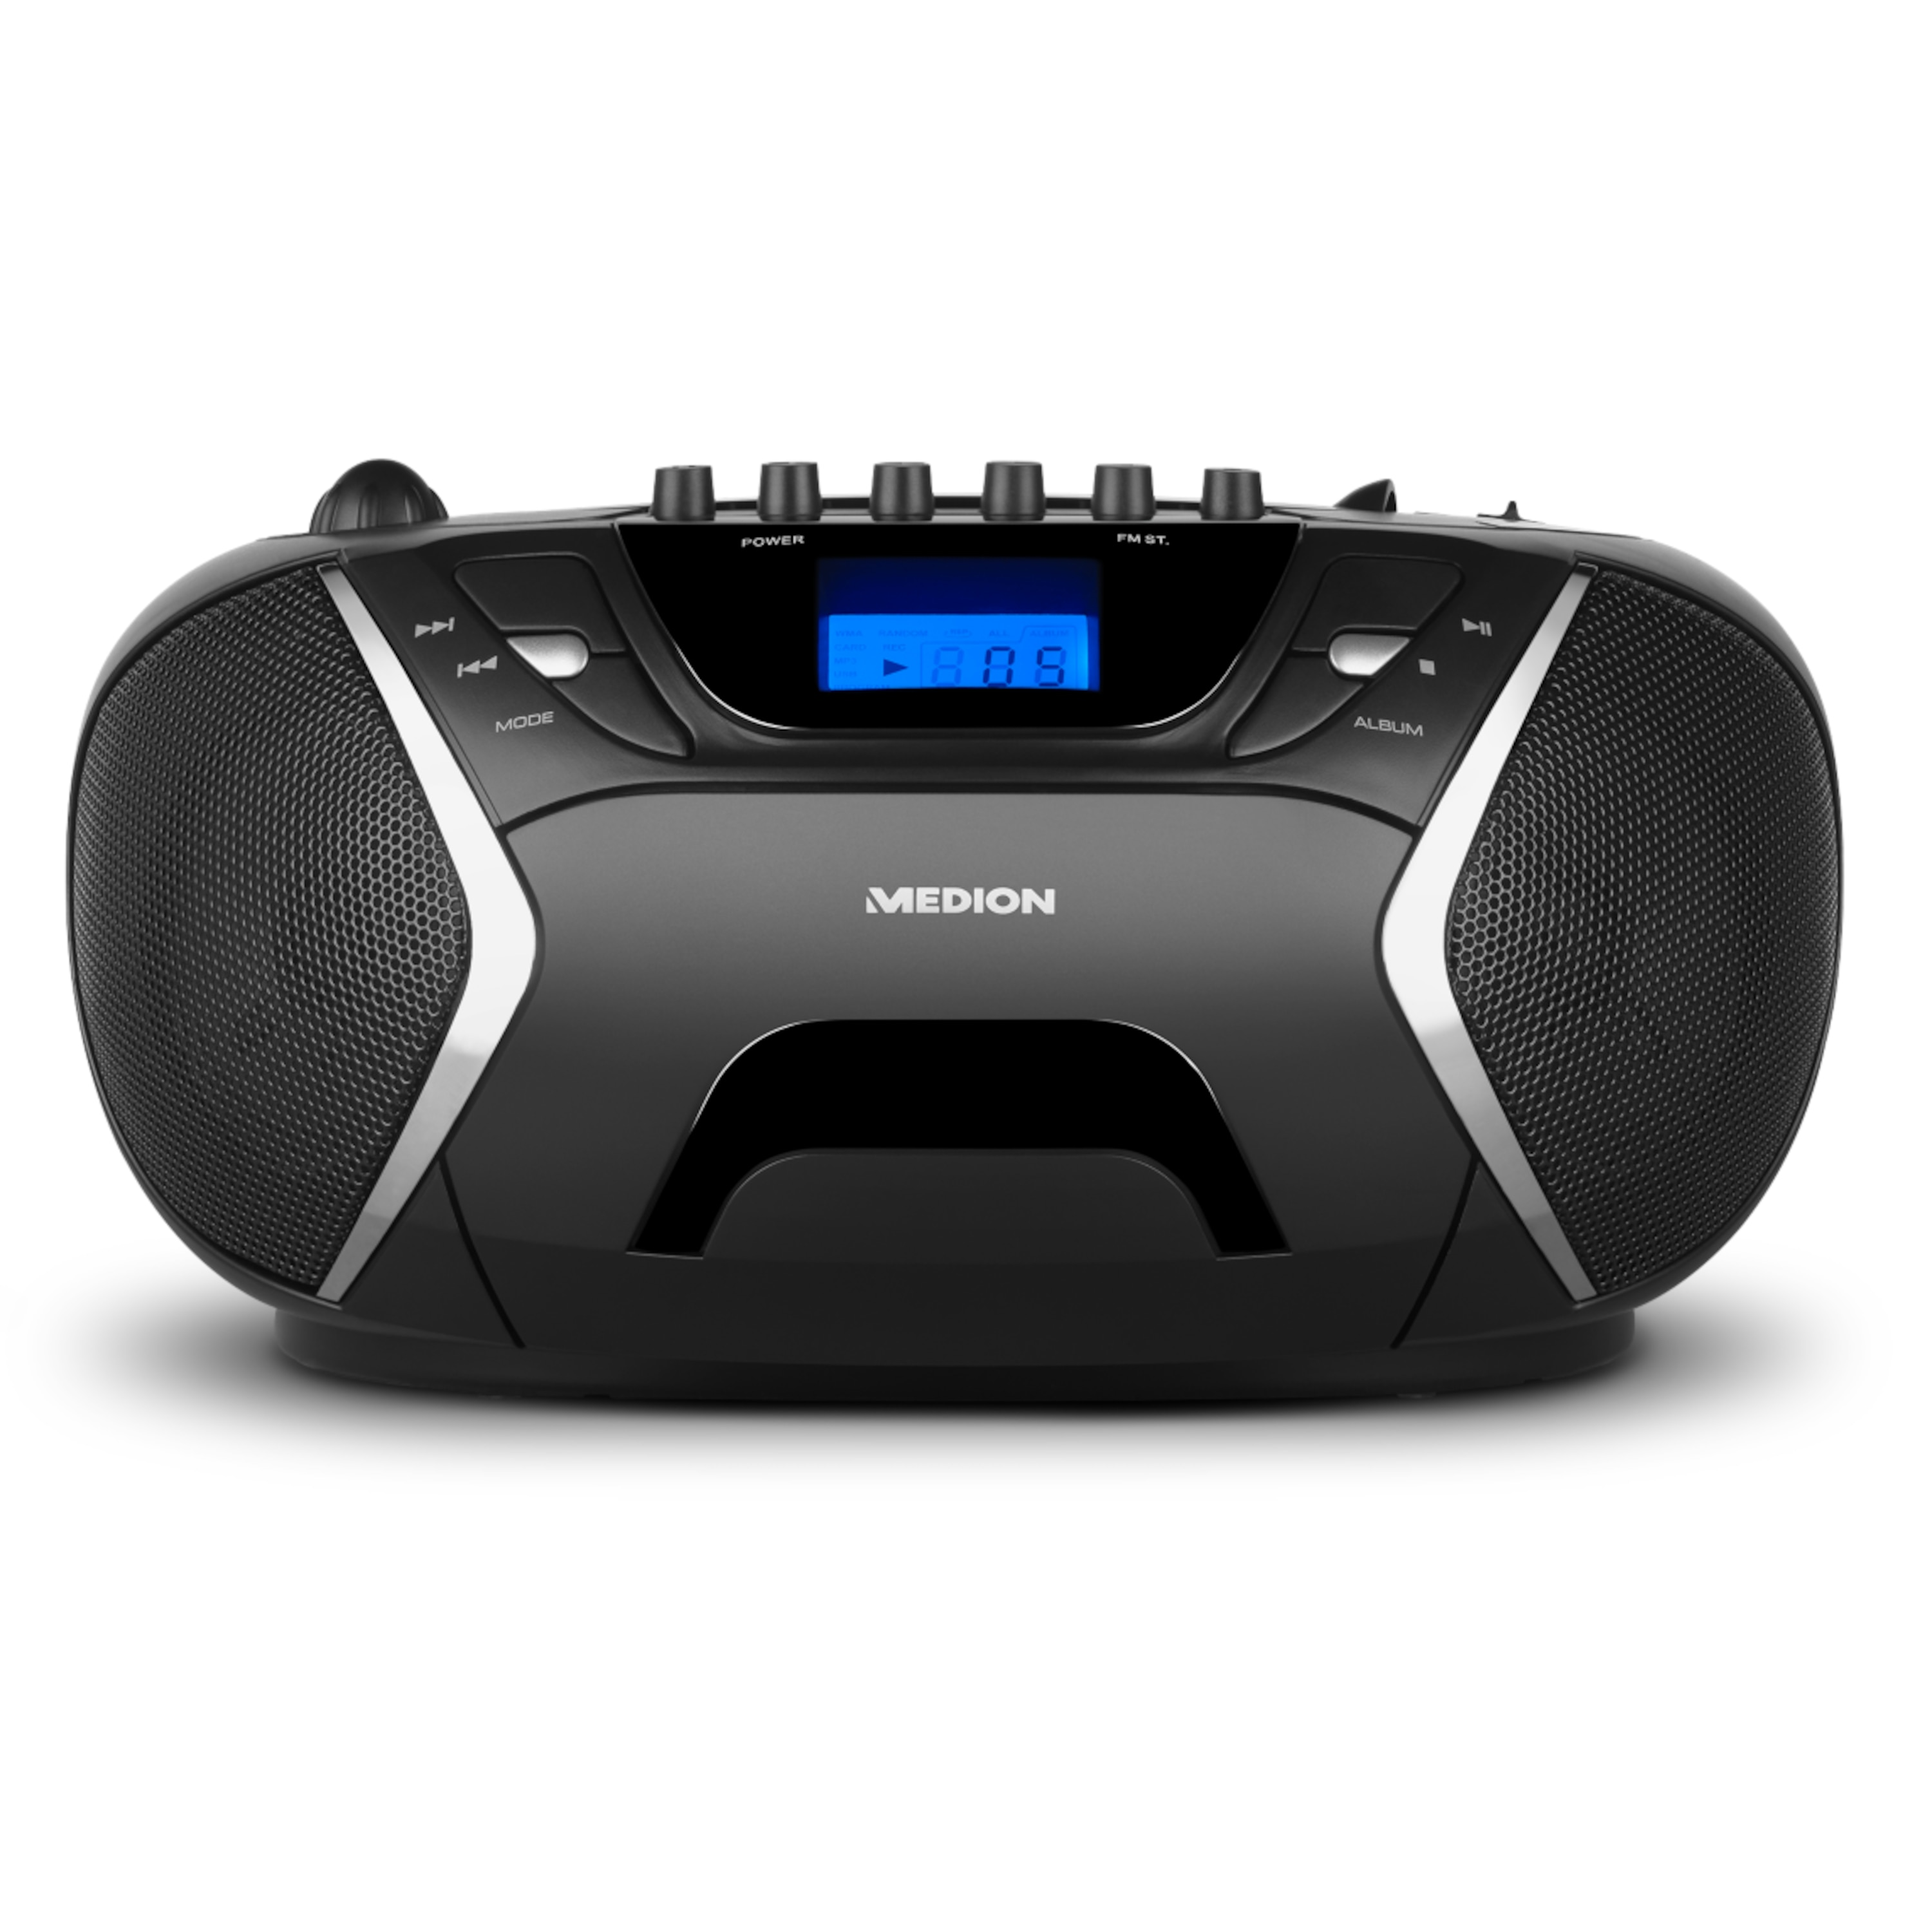 MEDION® LIFE® E65073, Stereo Sound System, Top-Loading CD / MP3-Wiedergabe, AUX-Eingang, 2 x 10 Watt, Kassettendeck, Tuner (B-Ware)